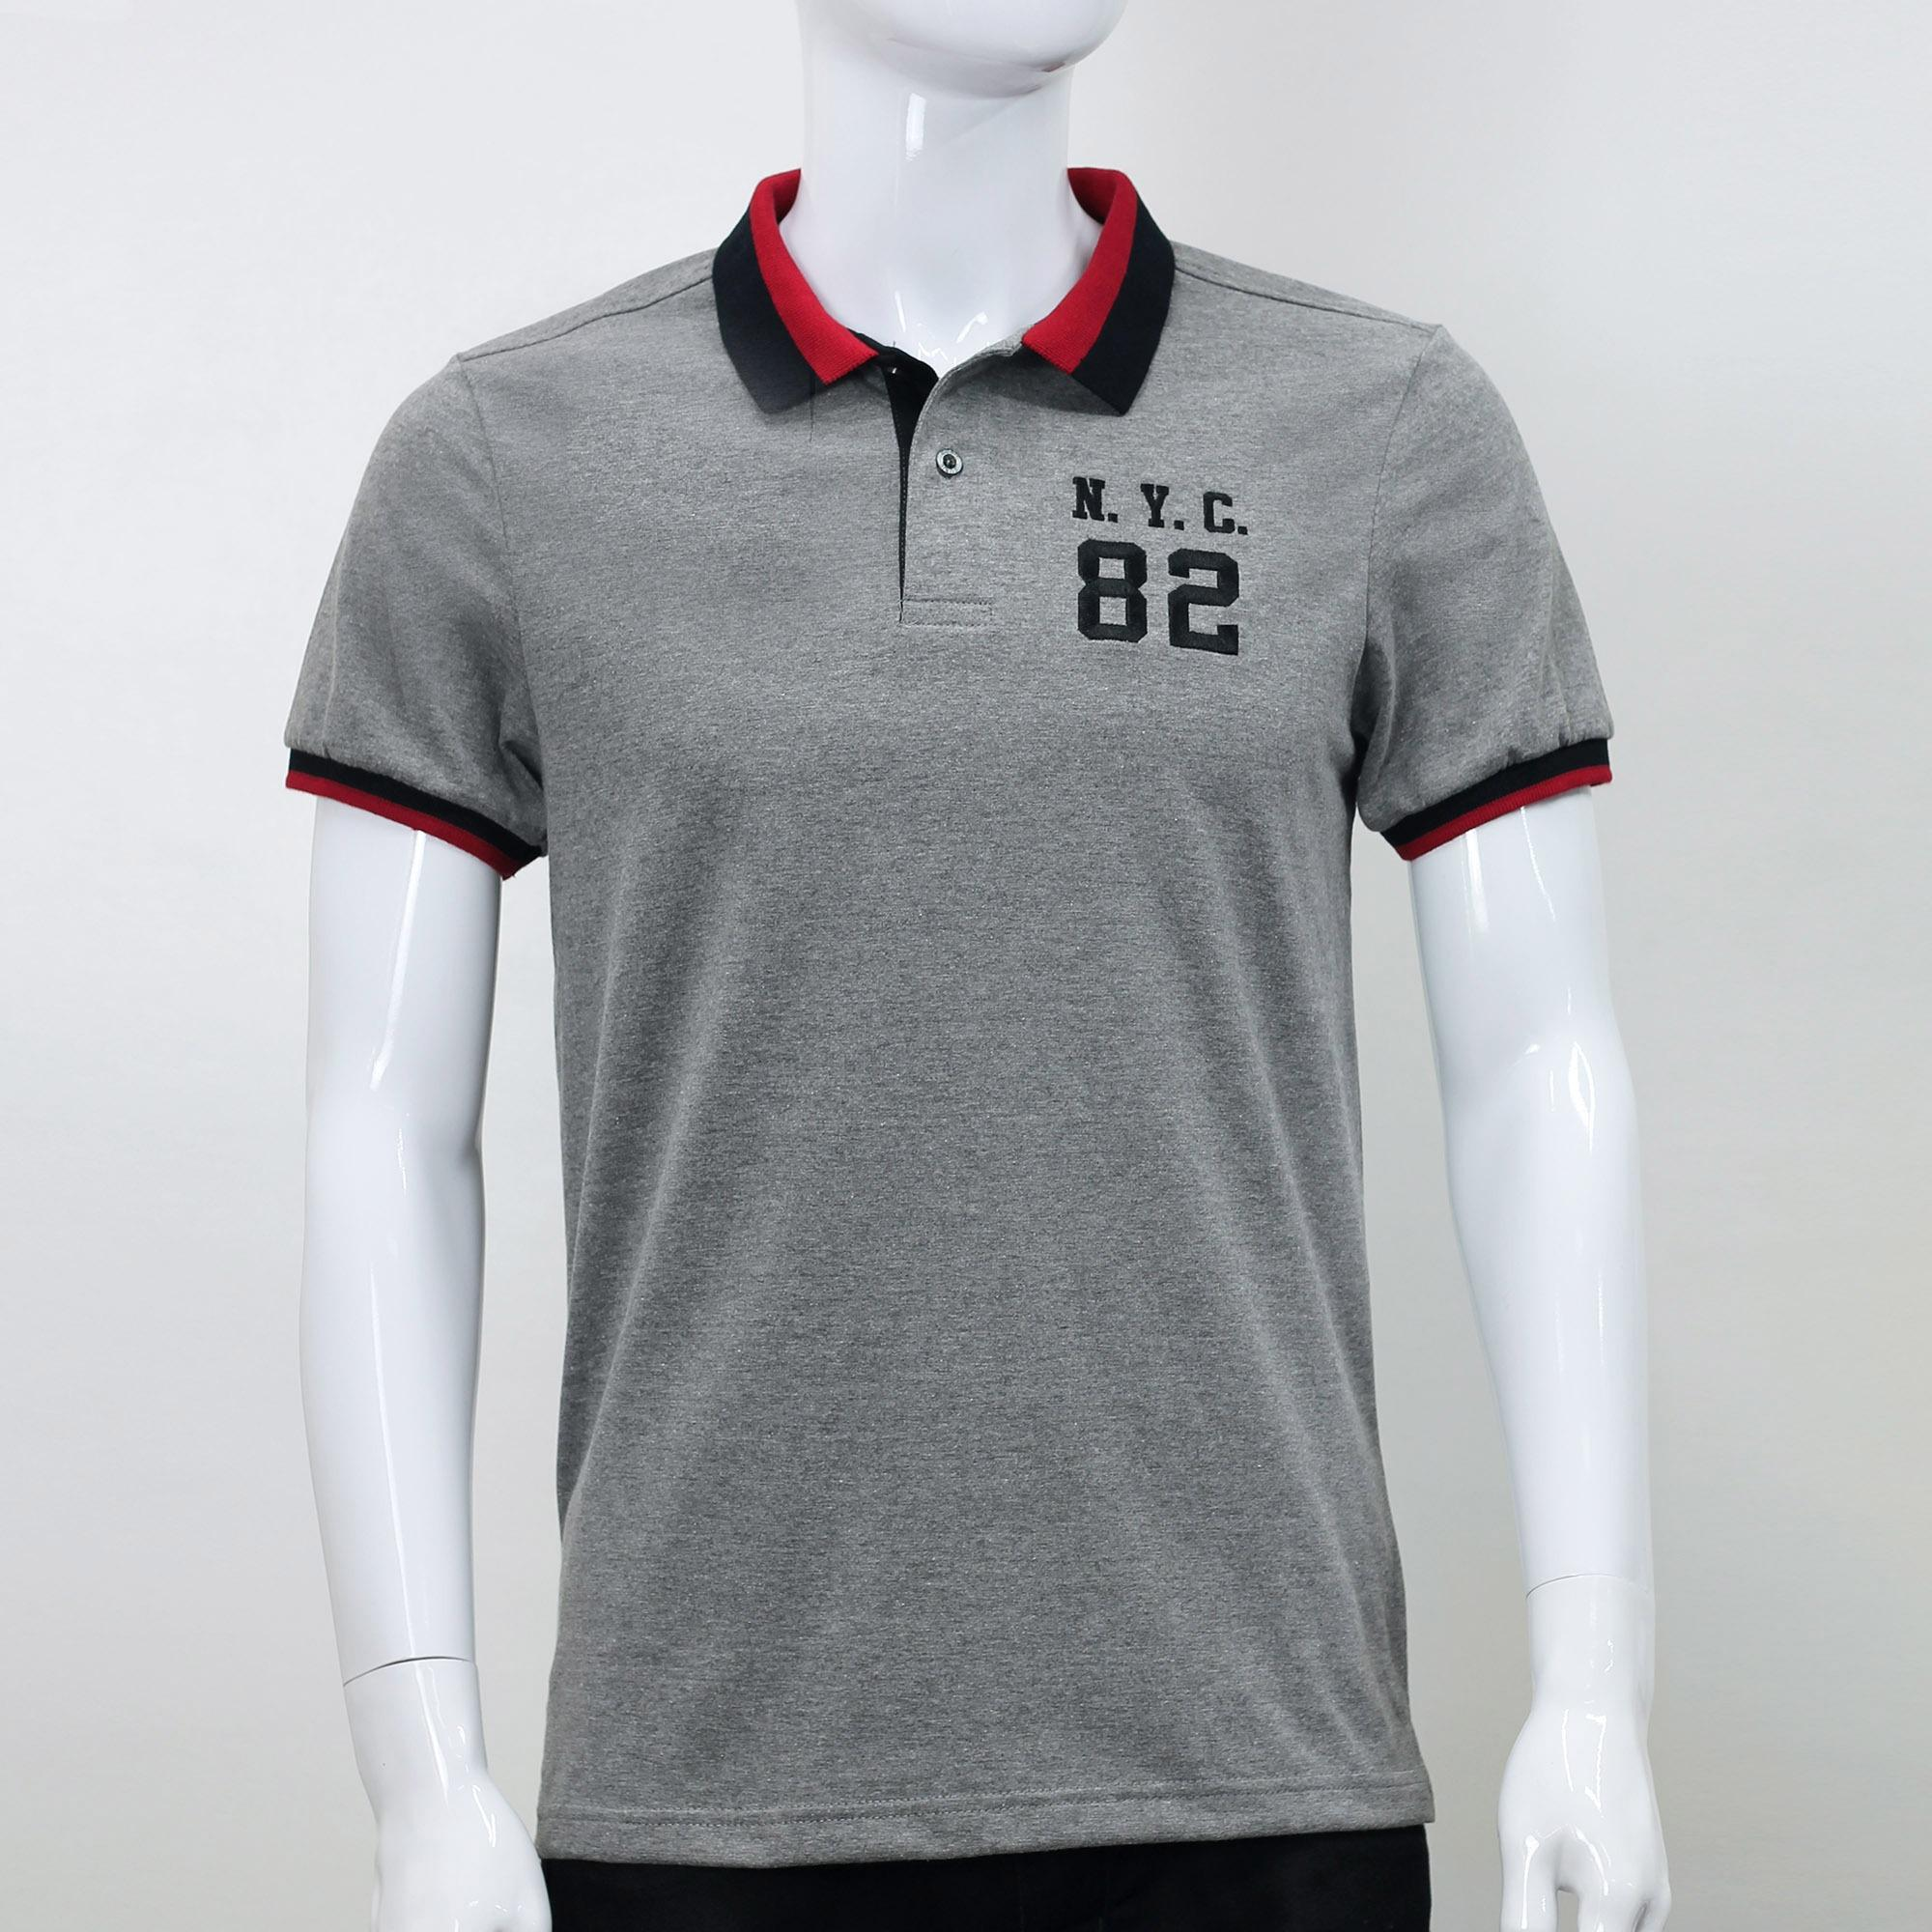 Polo Shirt Design Maker Philippines Cotswold Hire